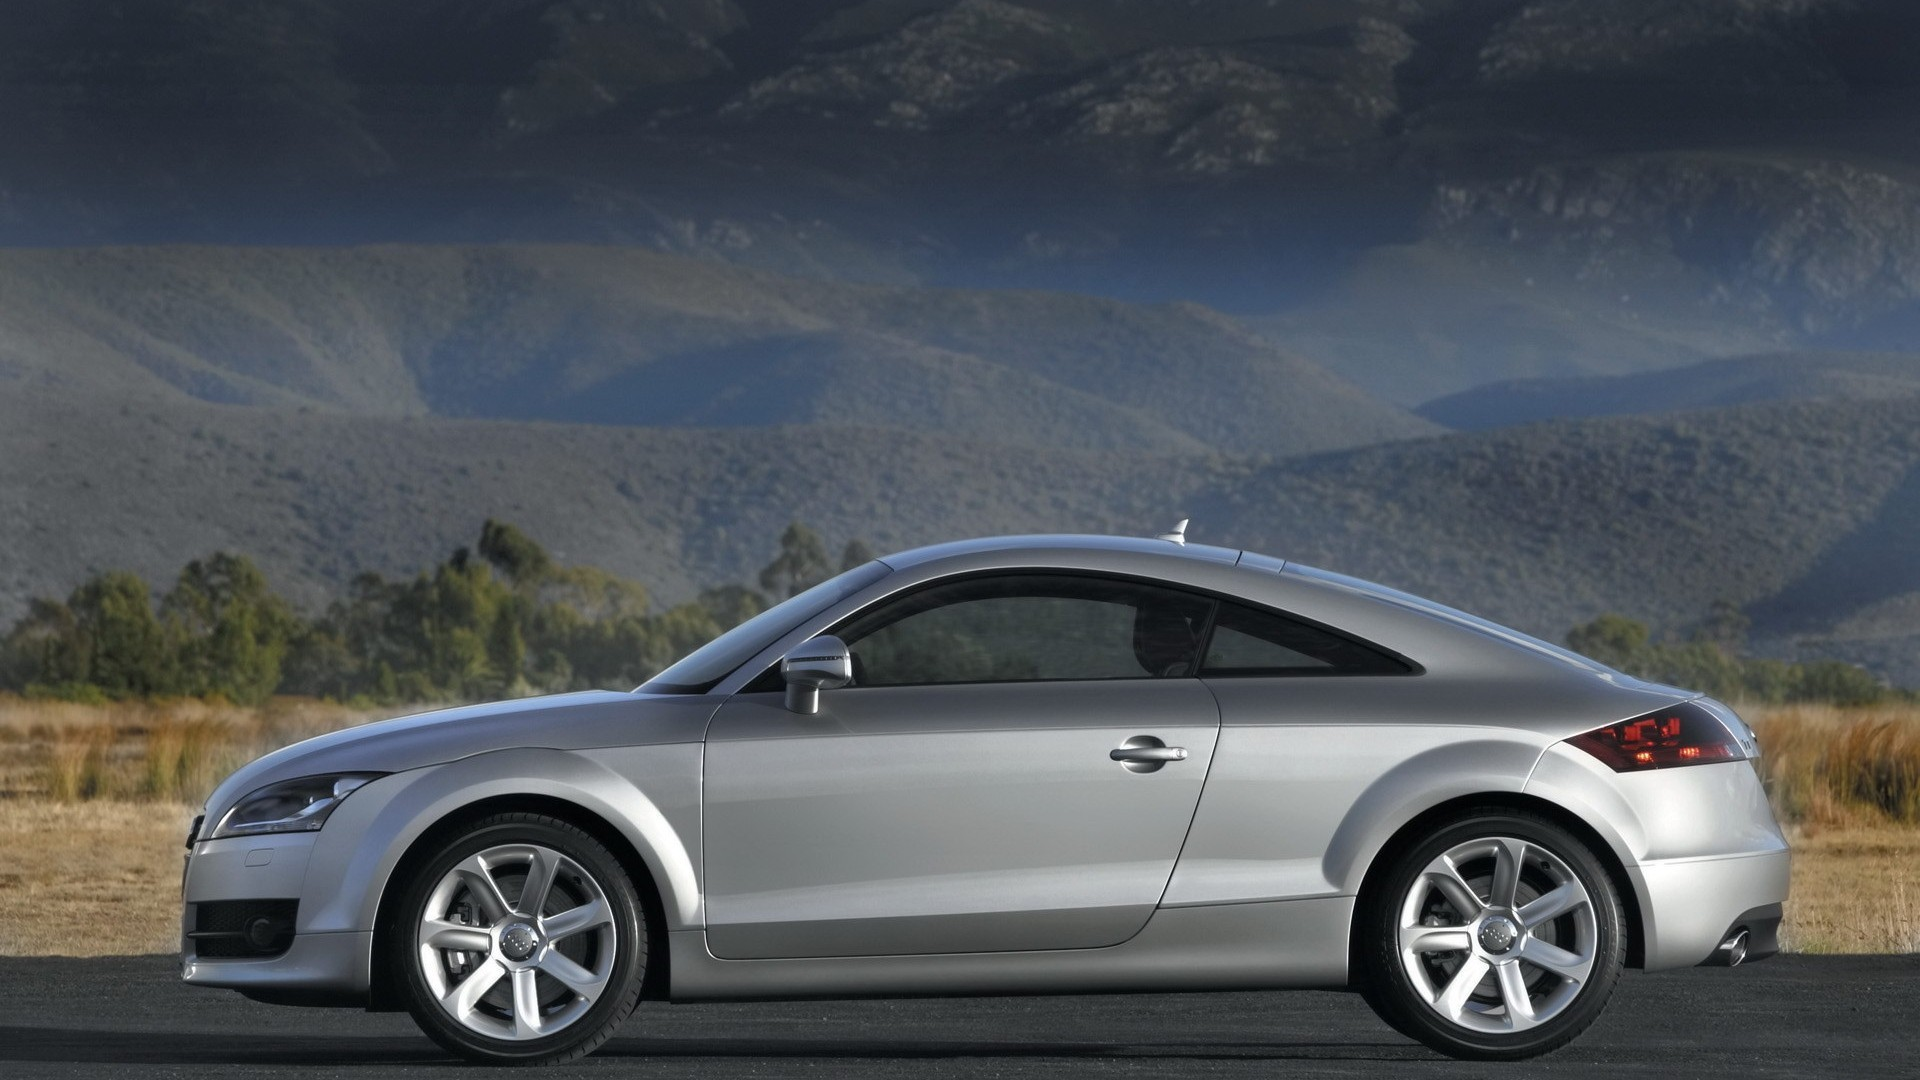 cars HDR Photography audi HD Wallpaper